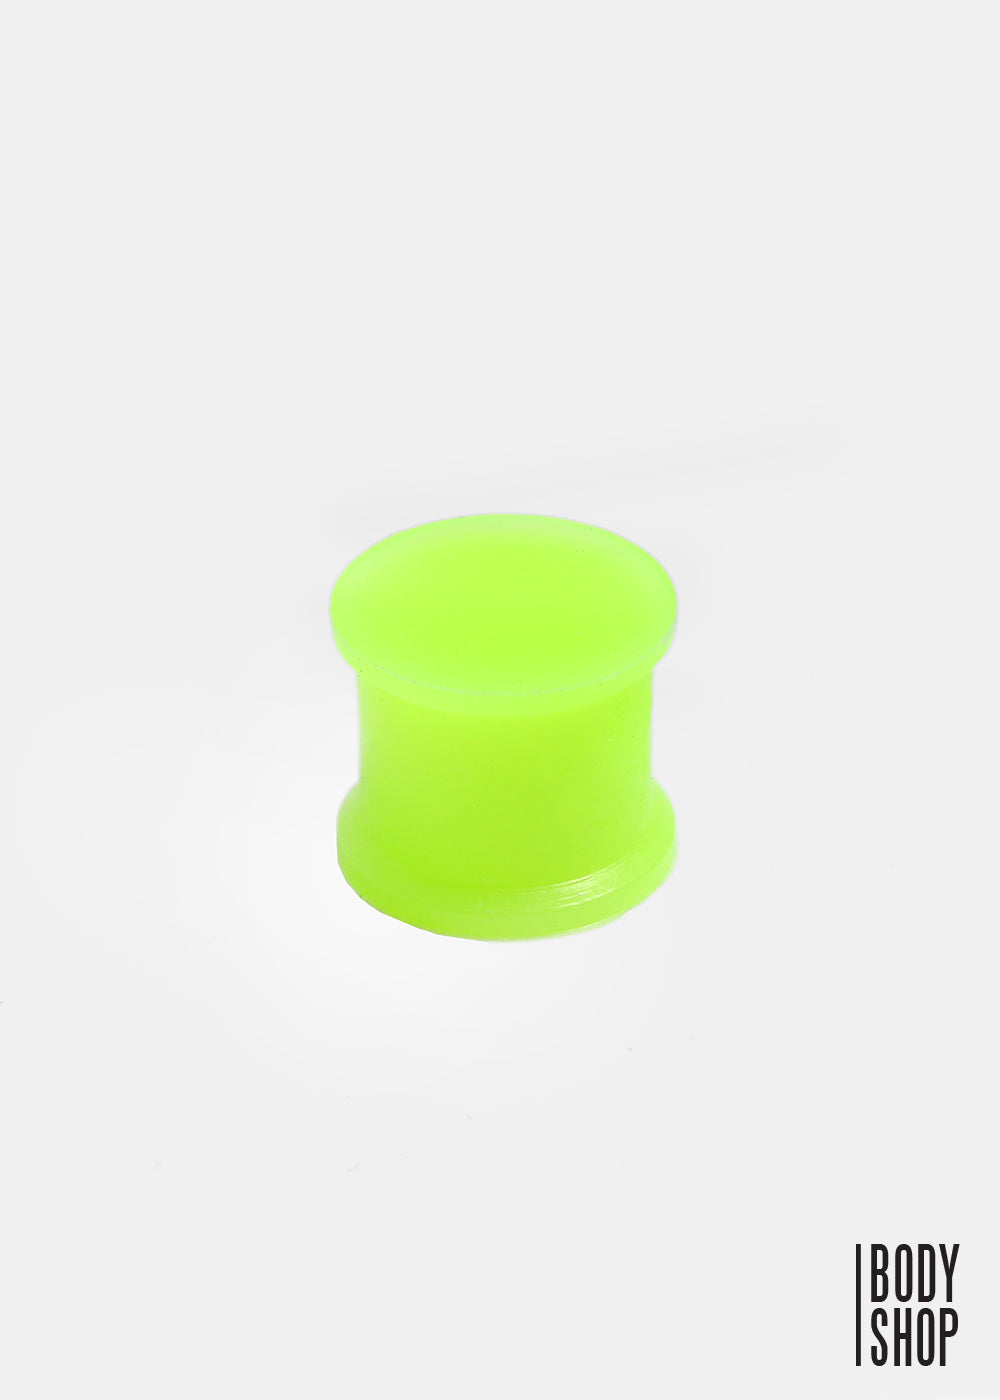 Double Flared Glow in the Dark Silicone Flexible Plug (1/2GA)